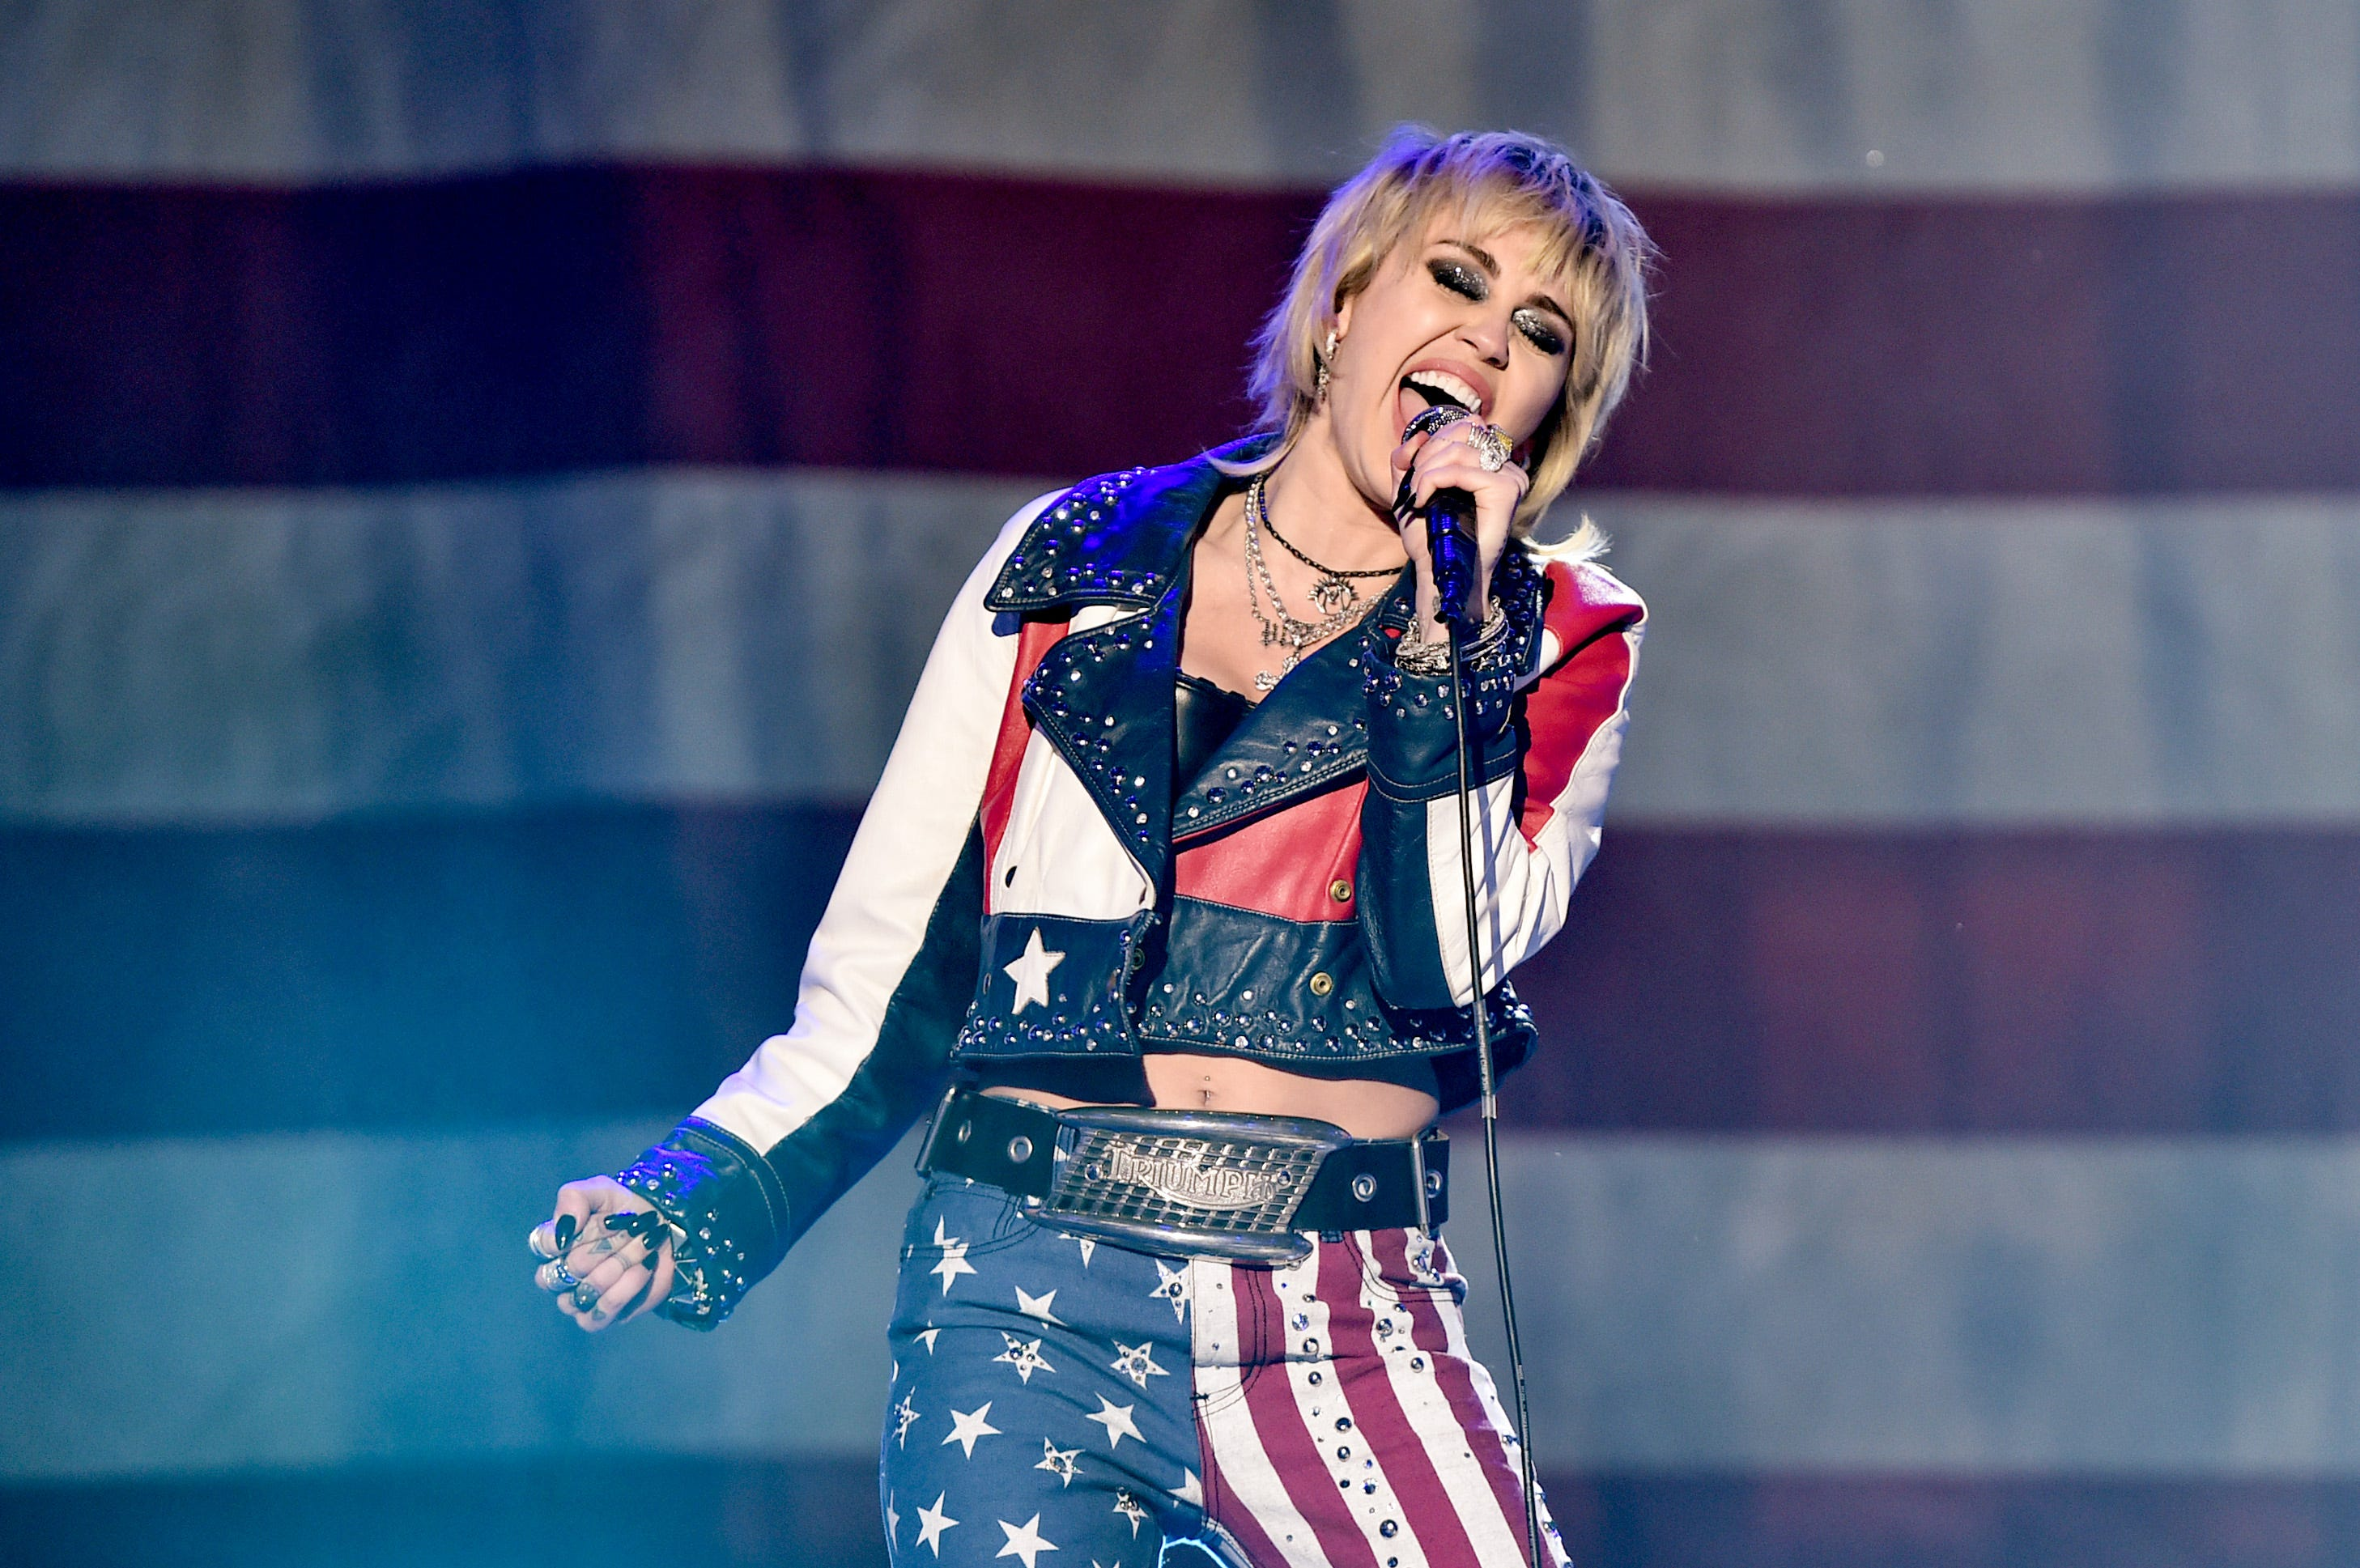 SNL : Miley Cyrus covers Dolly Parton in moving Mother s Day opening tribute